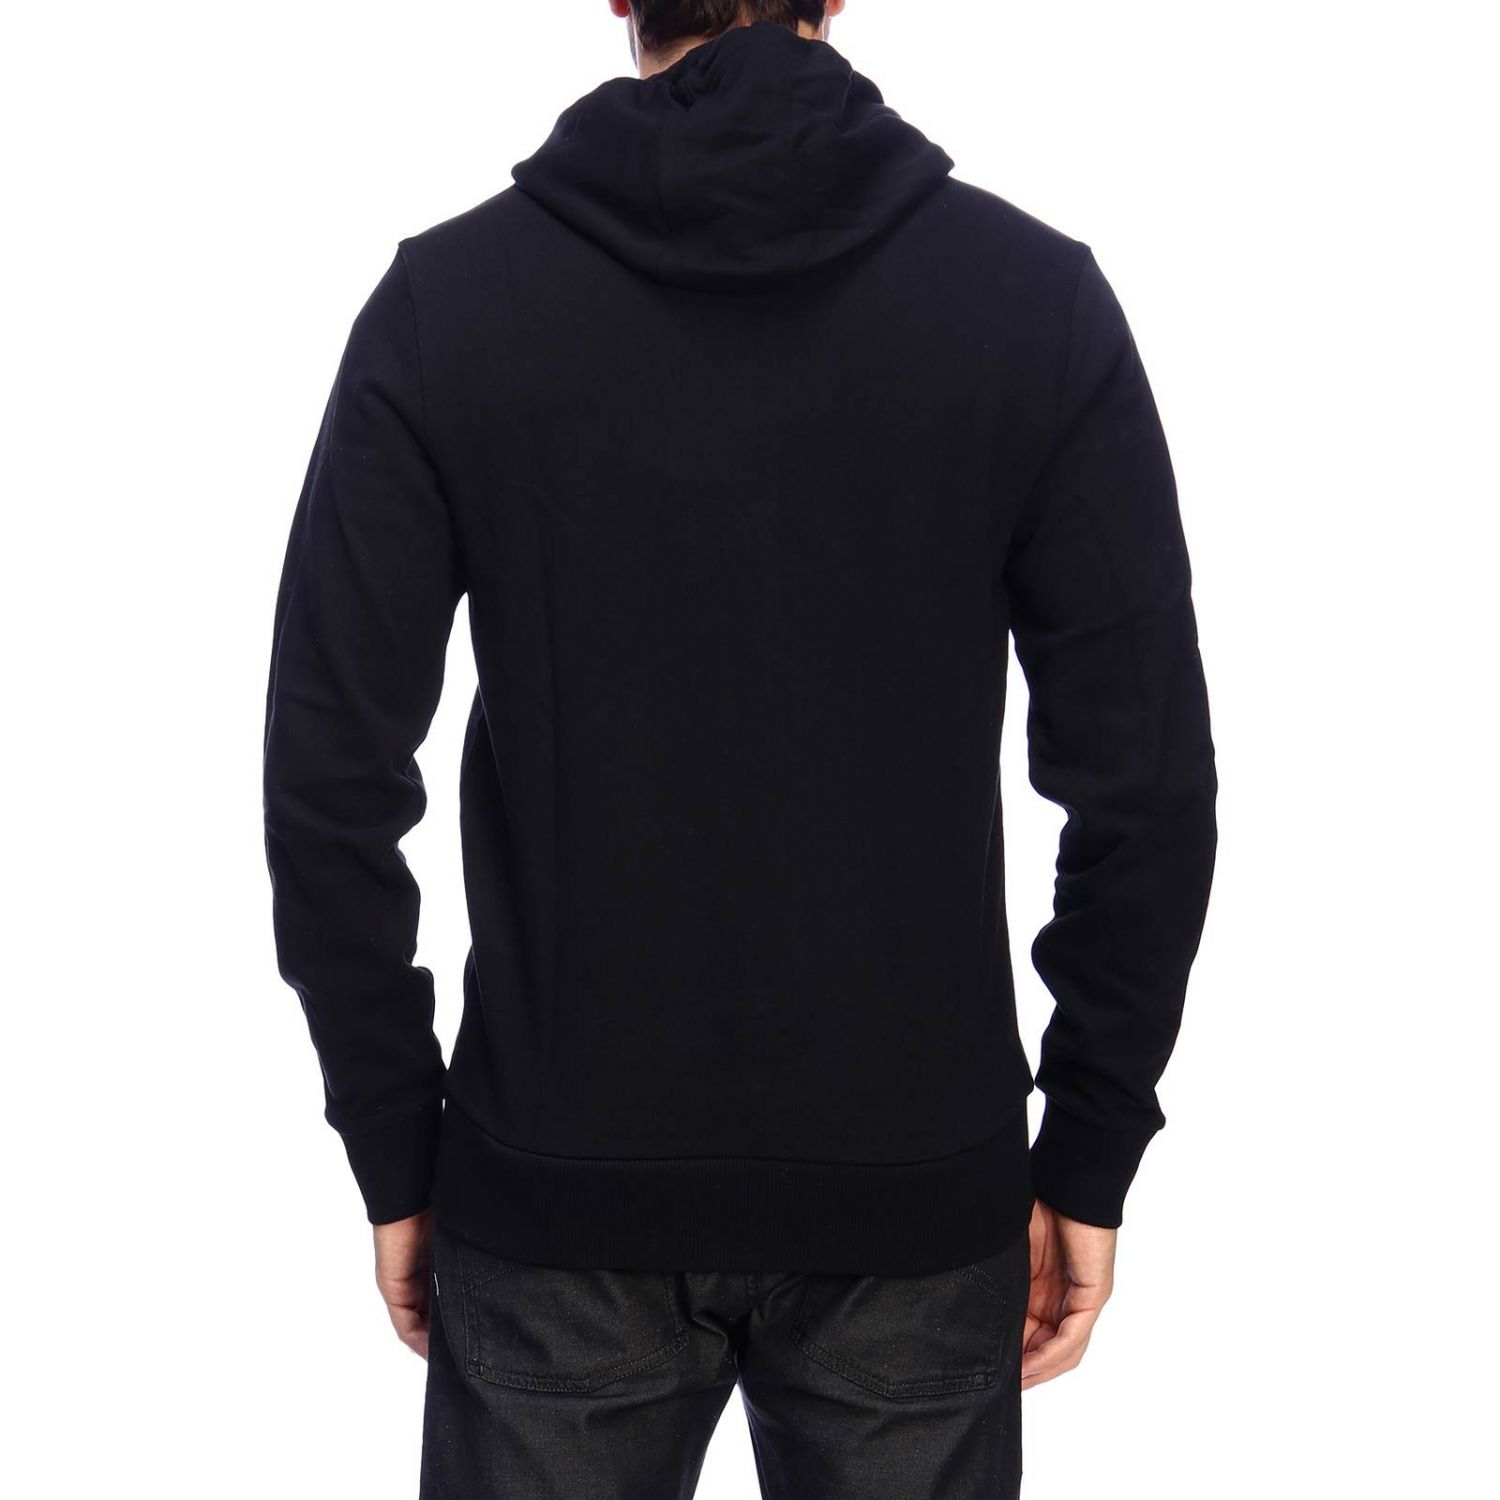 Sweater men Calvin Klein black 3